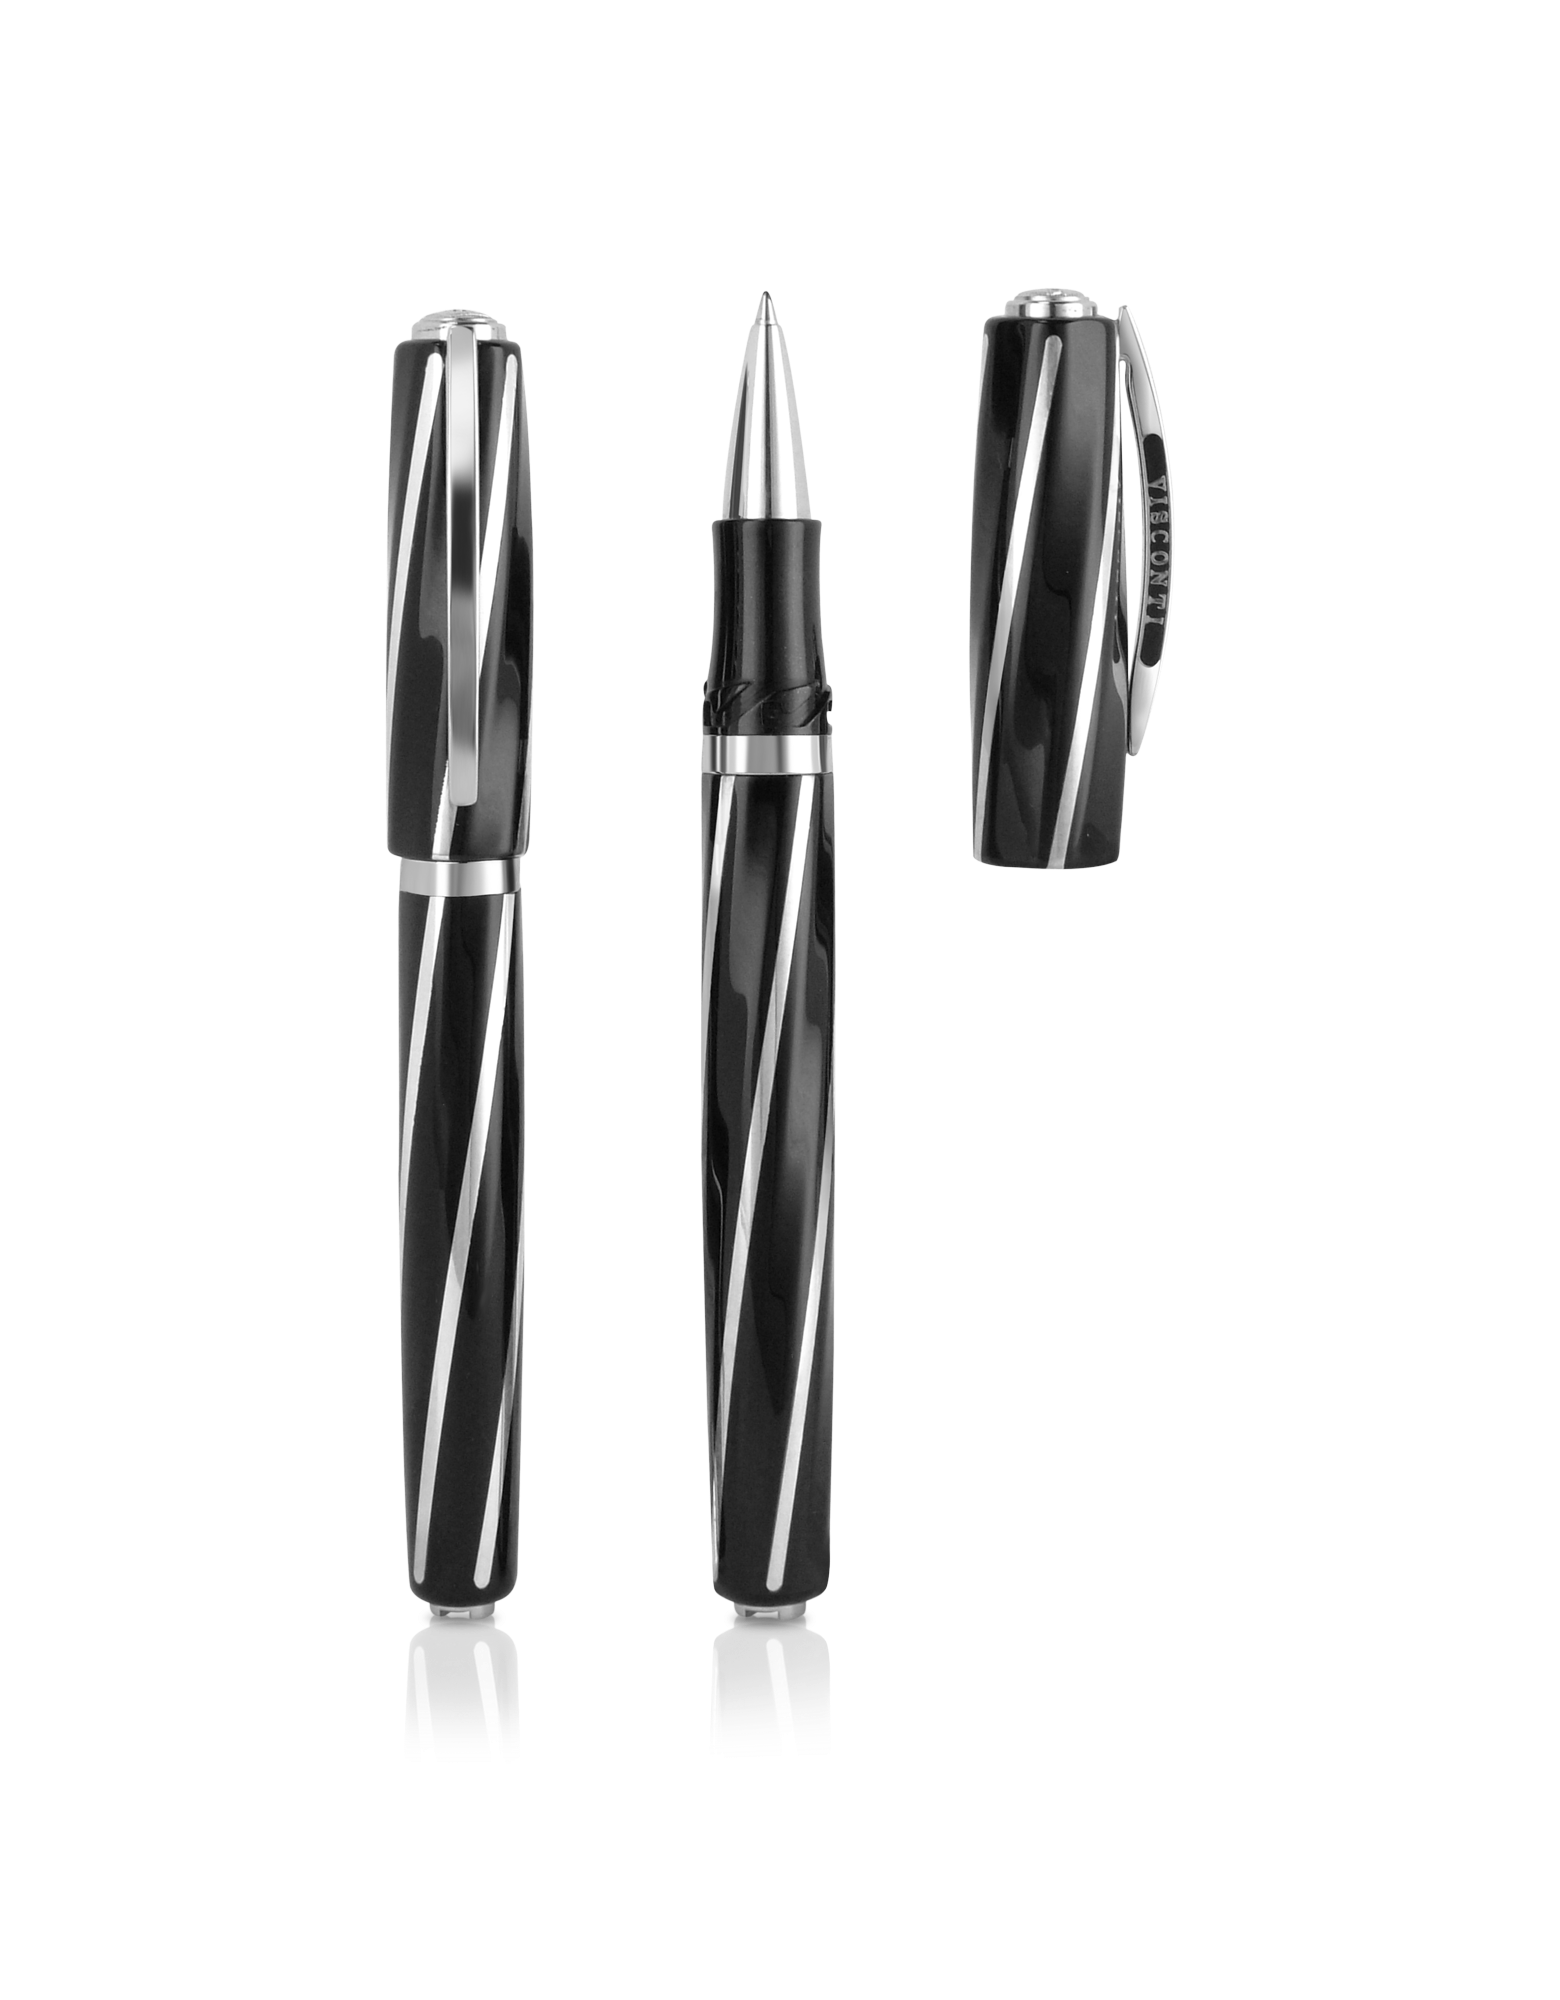 Image of Divina - Lucite and Sterling Silver Roller Pen